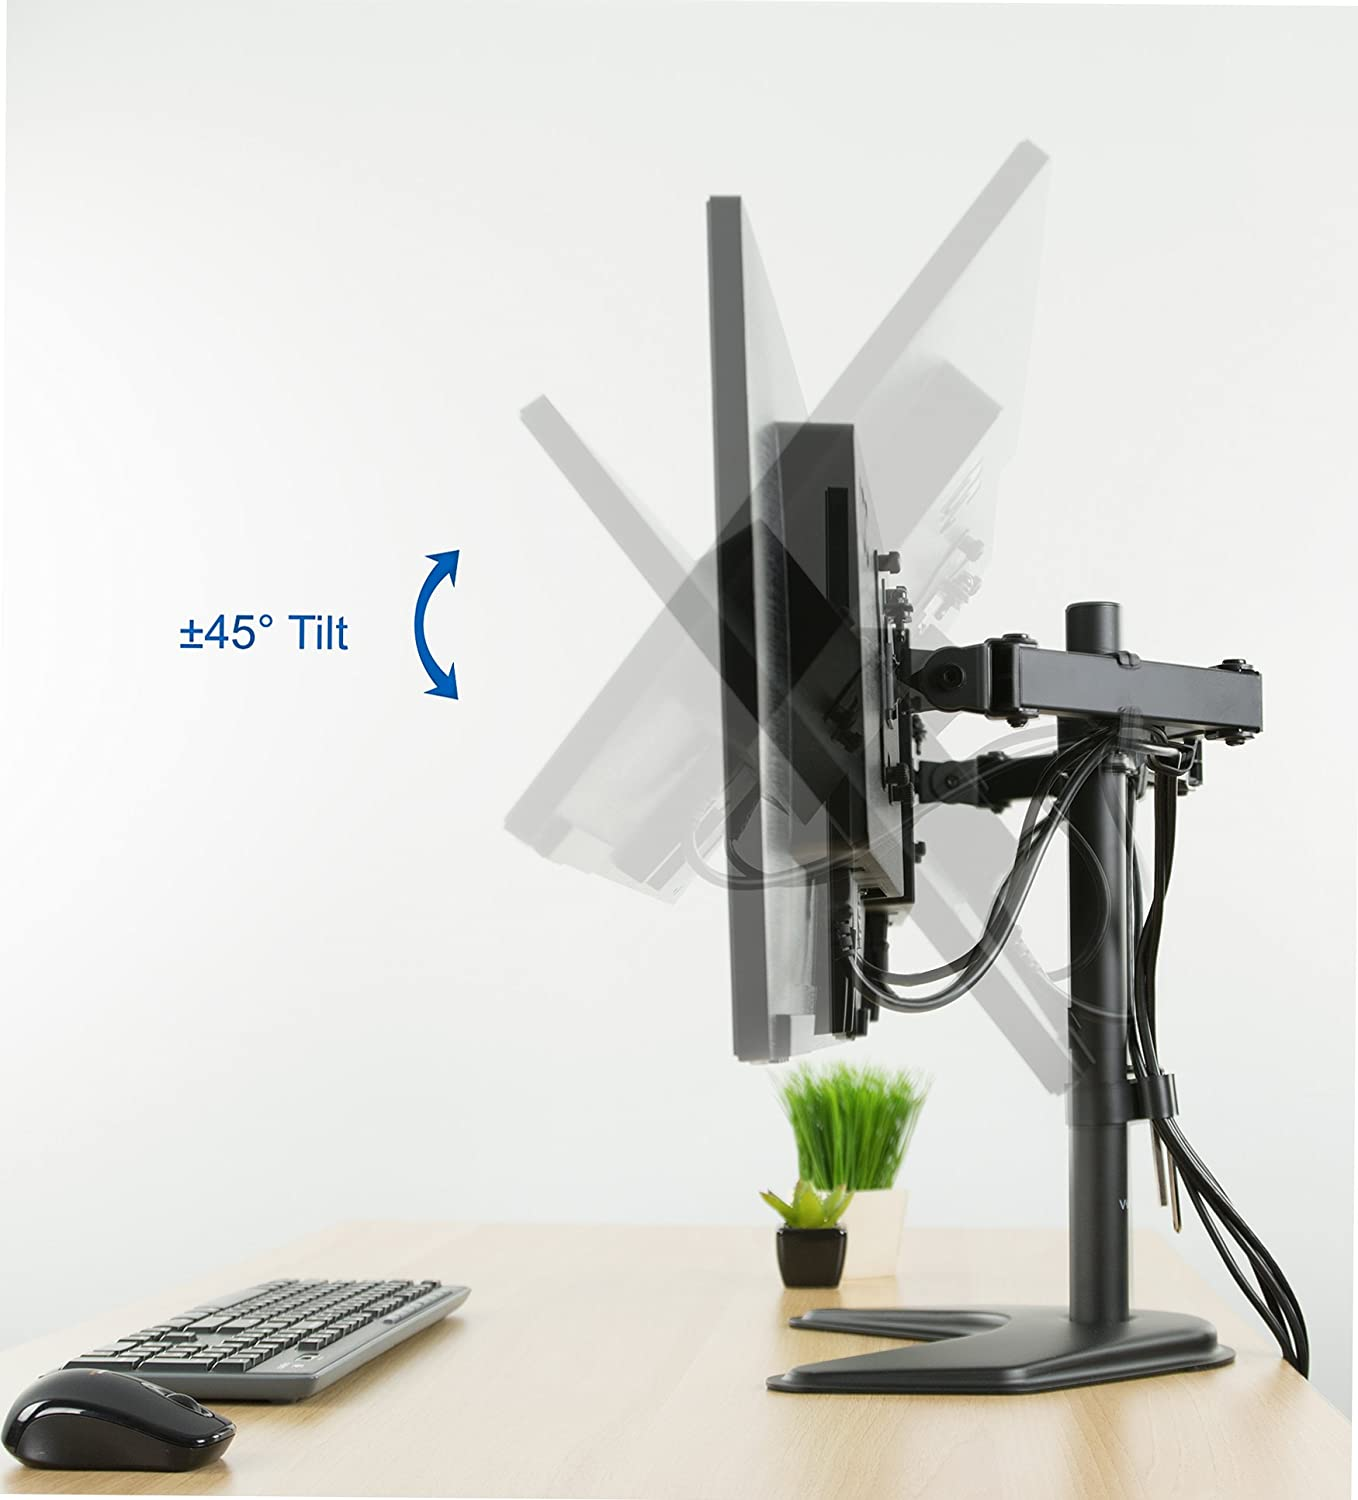 VIVO Dual LED LCD Monitor Free-Standing Desk Stand for 2 Screens up to 27 inches VESA - 8